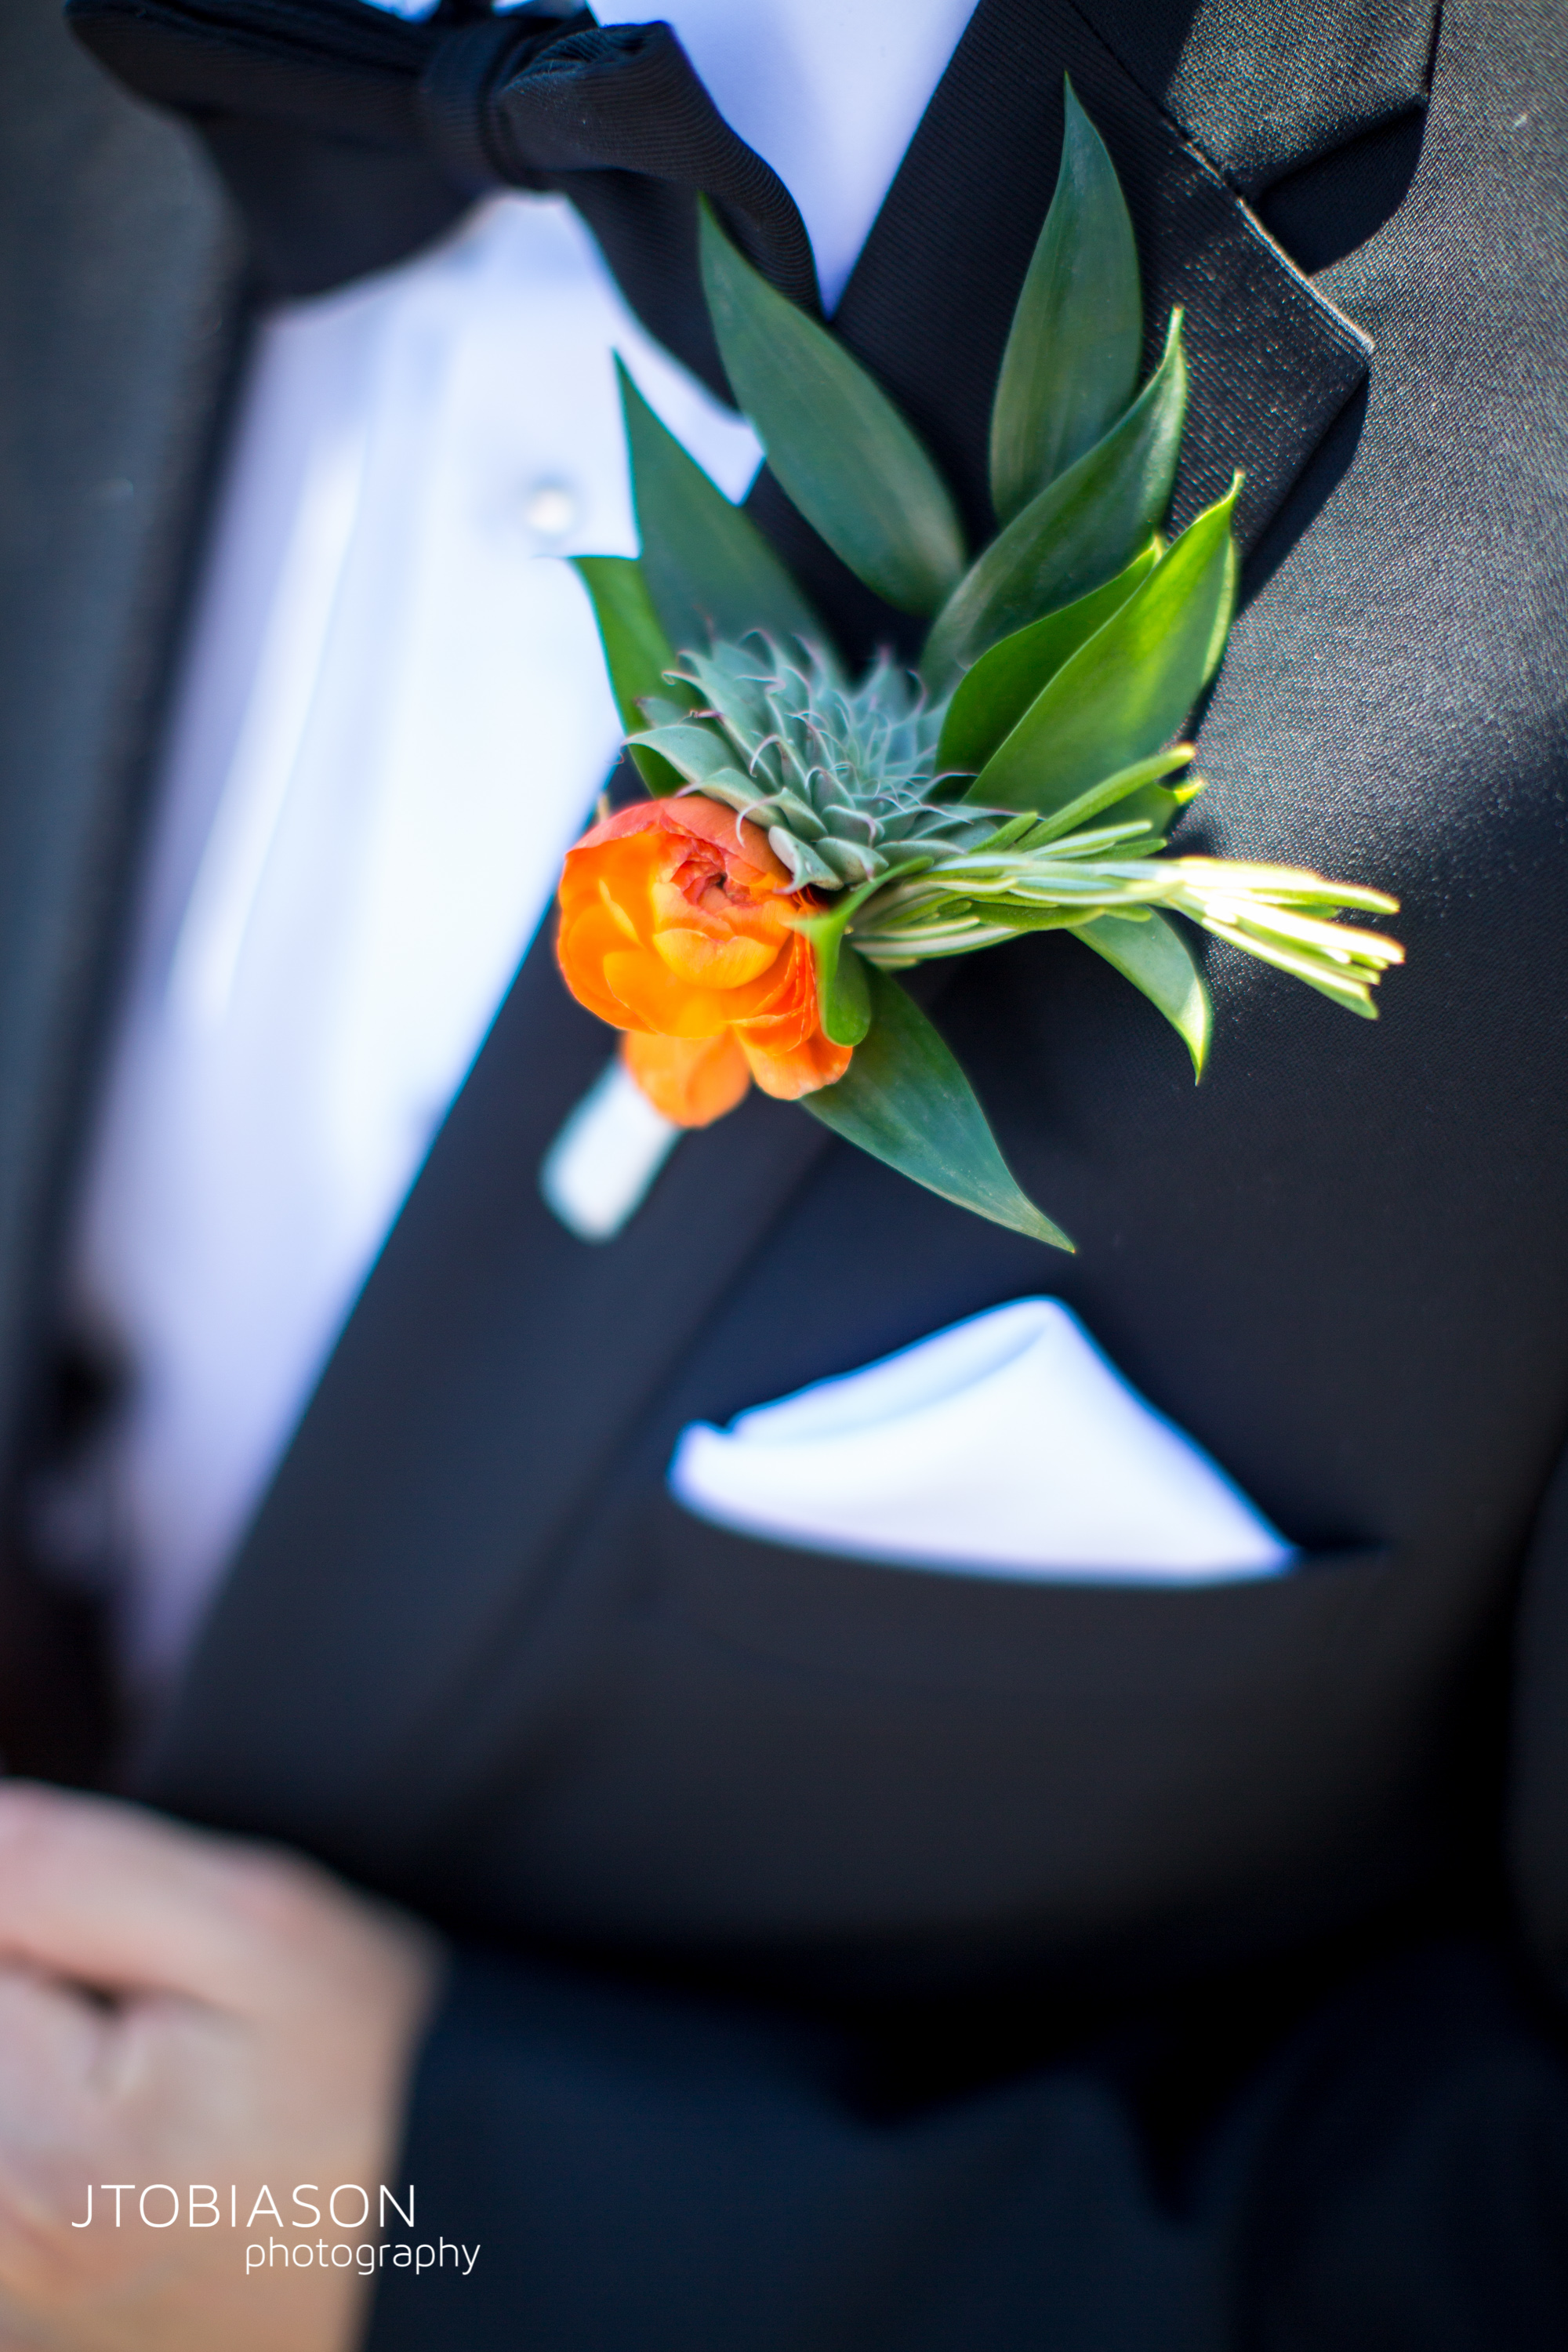 Seattle Tennis Club wedding in Seattle |Groom's succulent and orange flower boutonierre | Perfectly Posh Events, Seattle Wedding Planner | JTobiason Photography | Sublime Stems